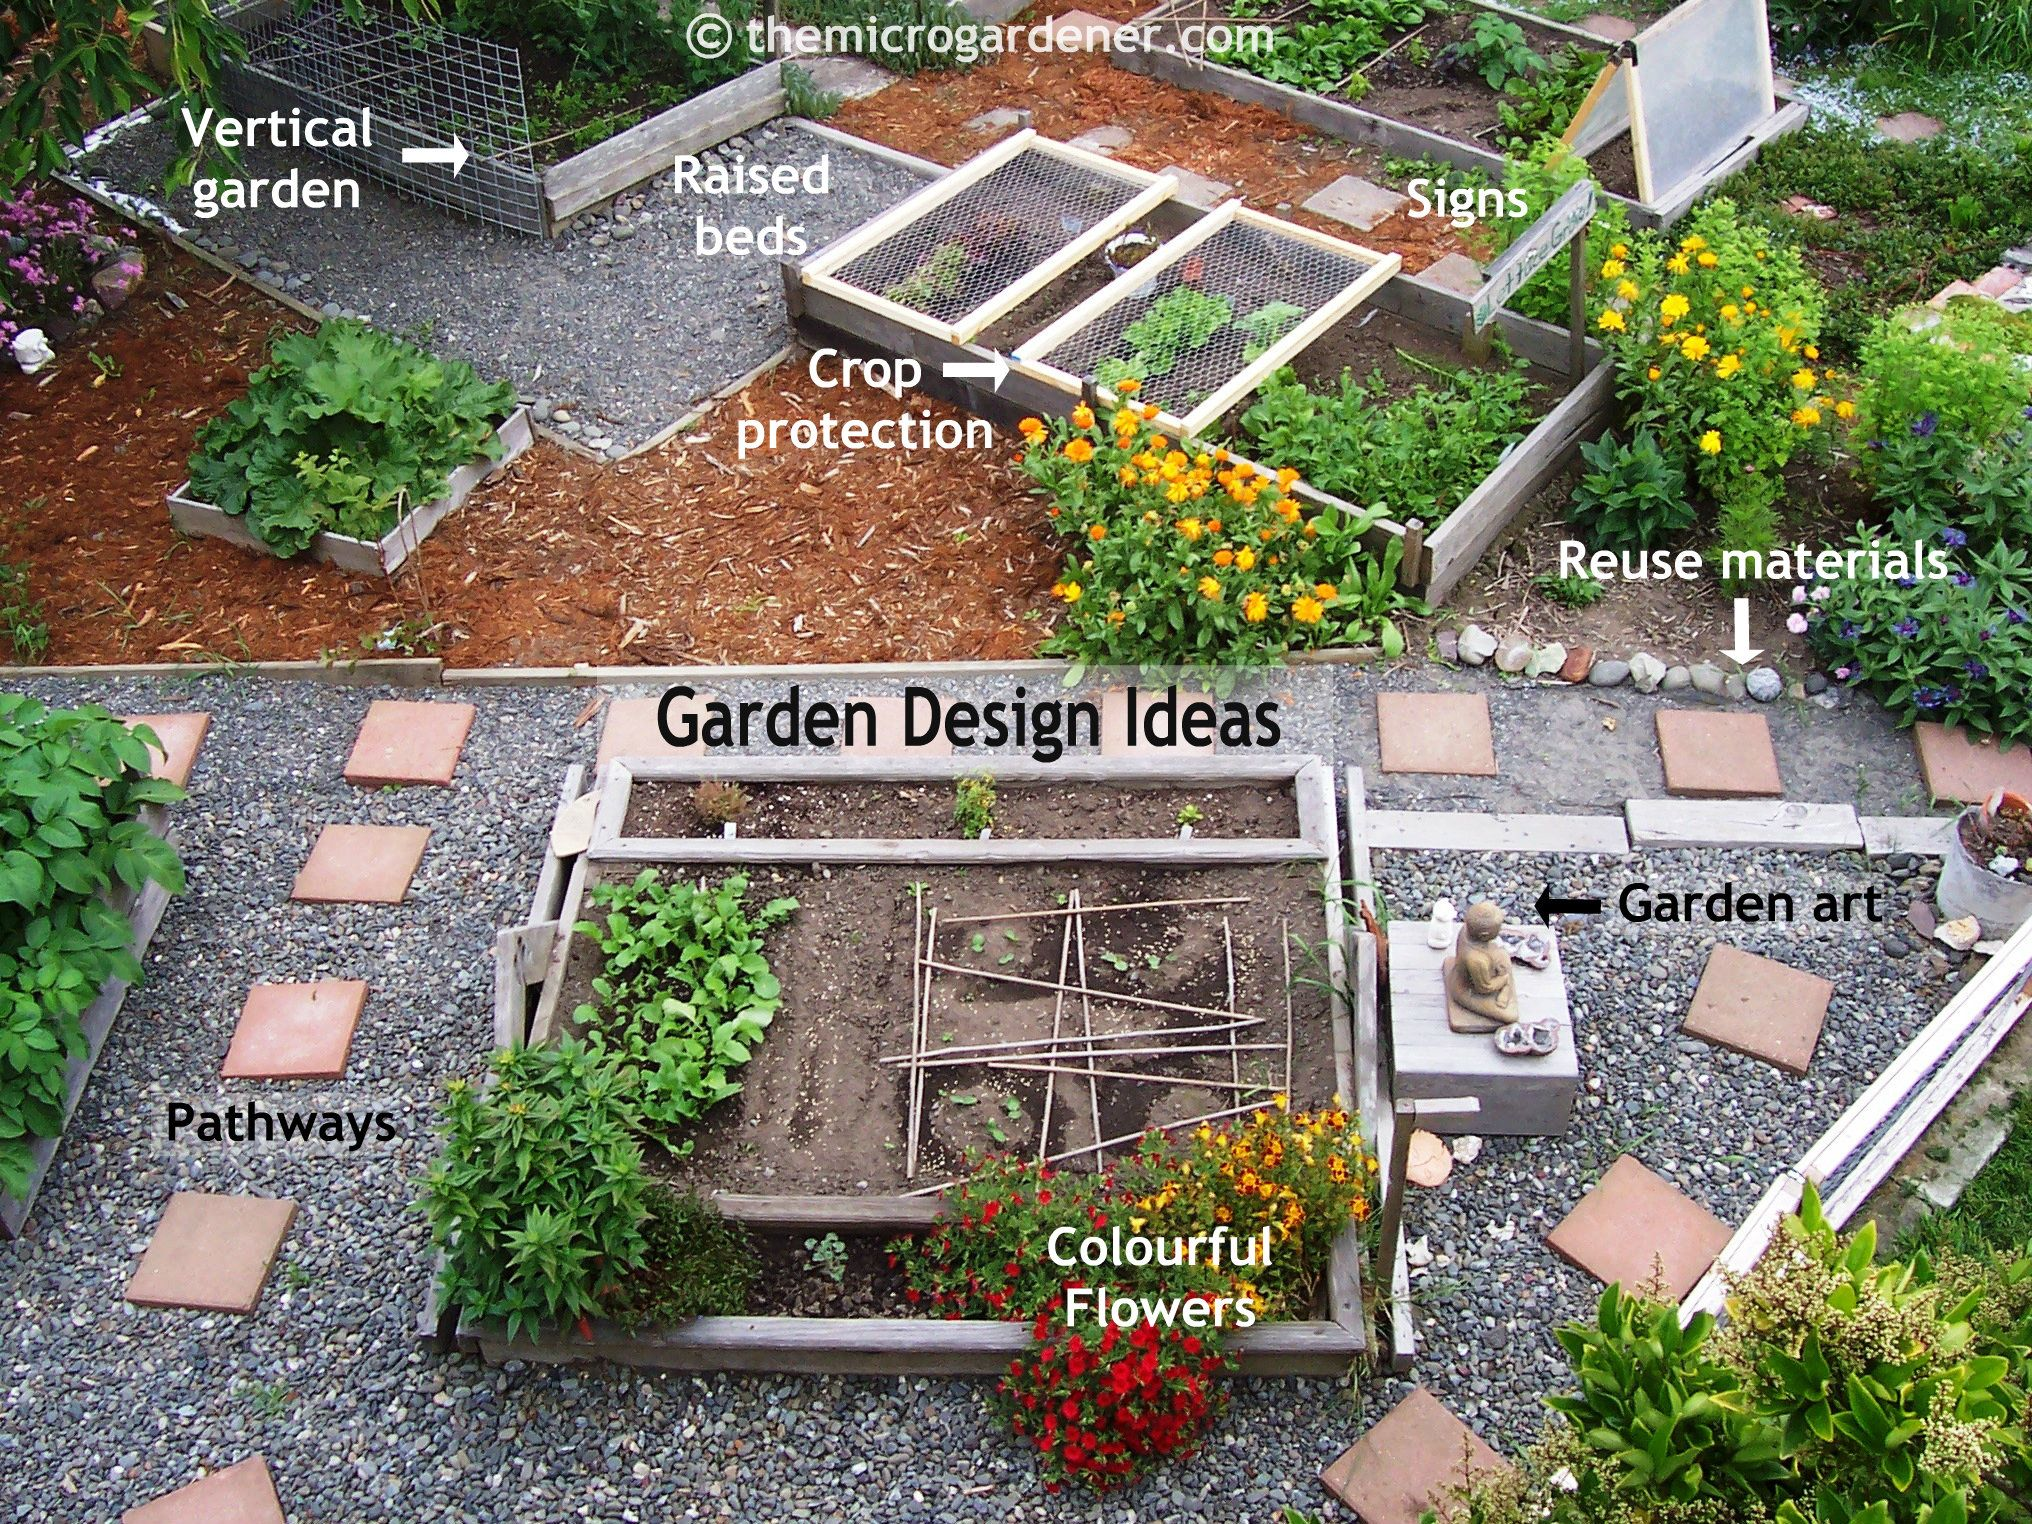 Small garden design ideas on pinterest vertical gardens for Garden design ideas short wide